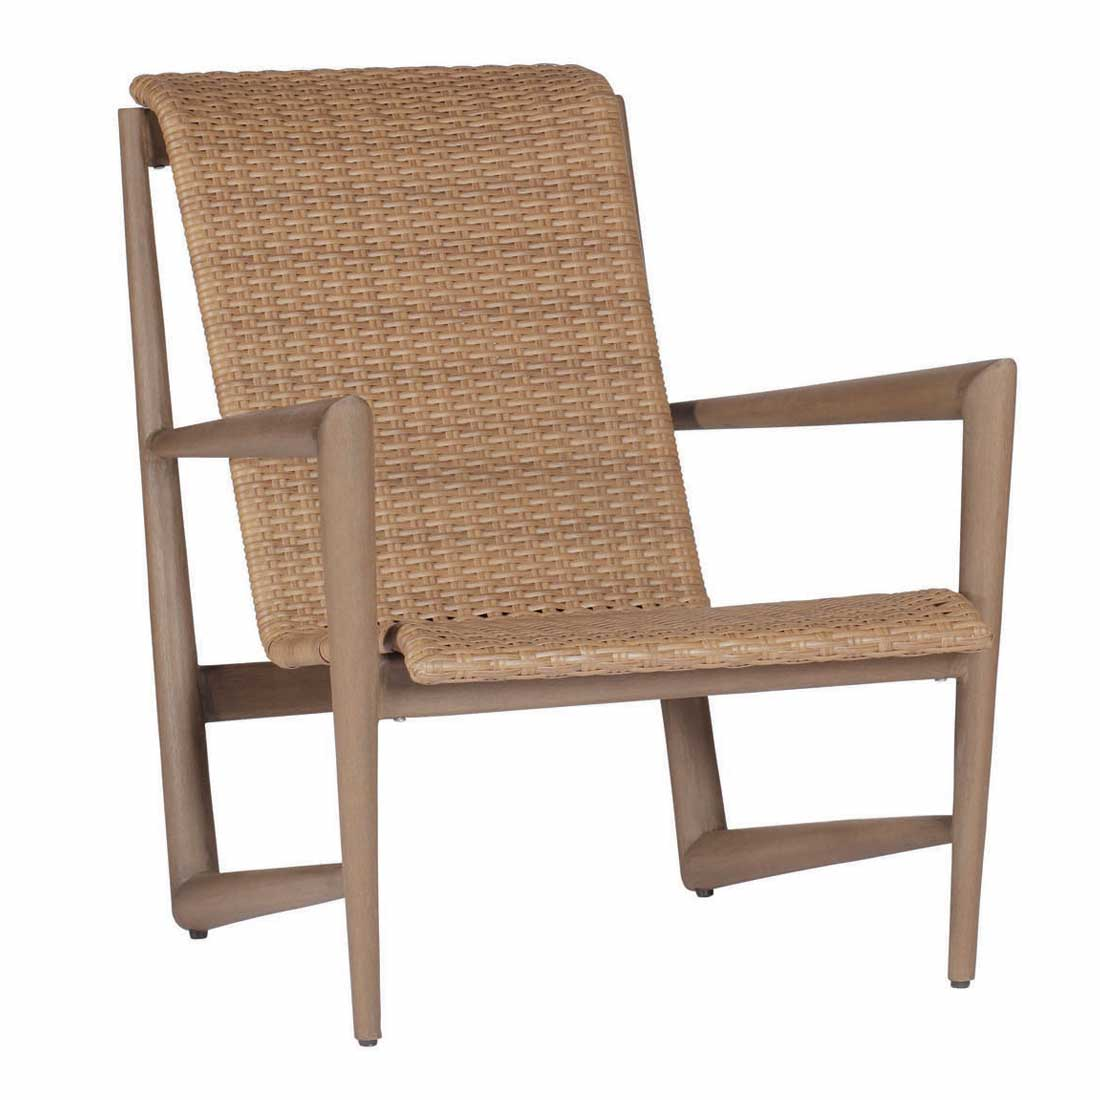 Wind Outdoor Wicker Lounge Chair